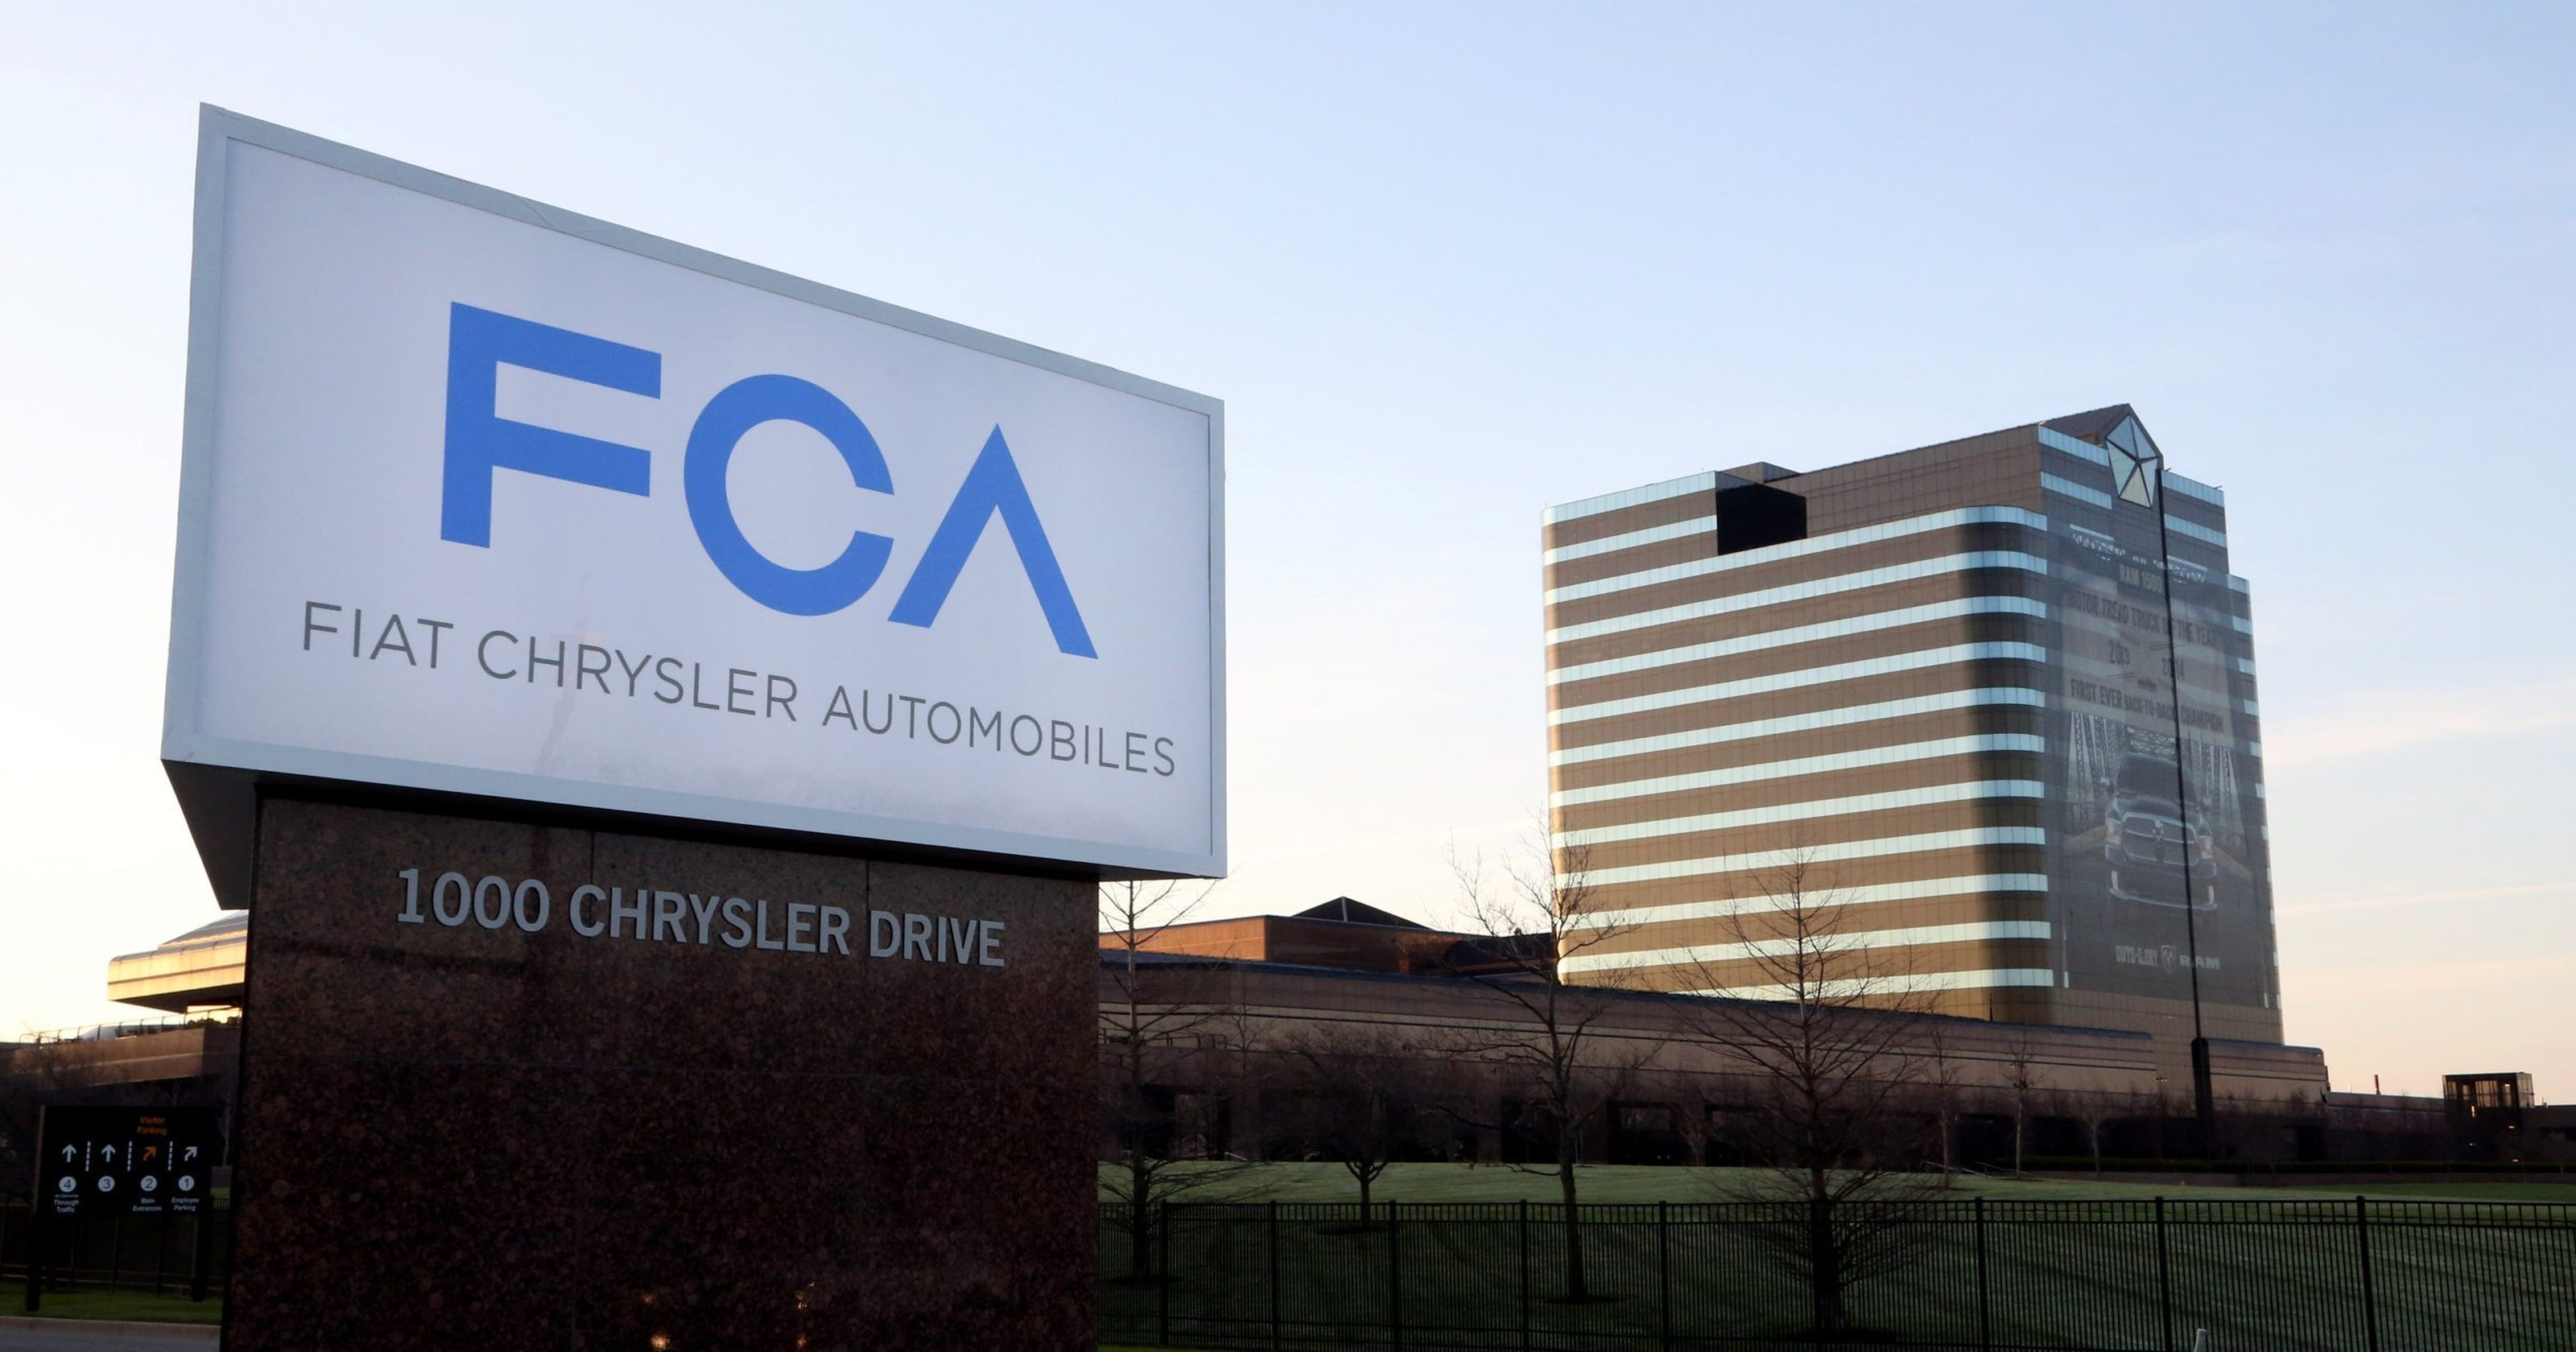 UAW/Fiat Chrysler scandal: Probe hints at wider conspiracy